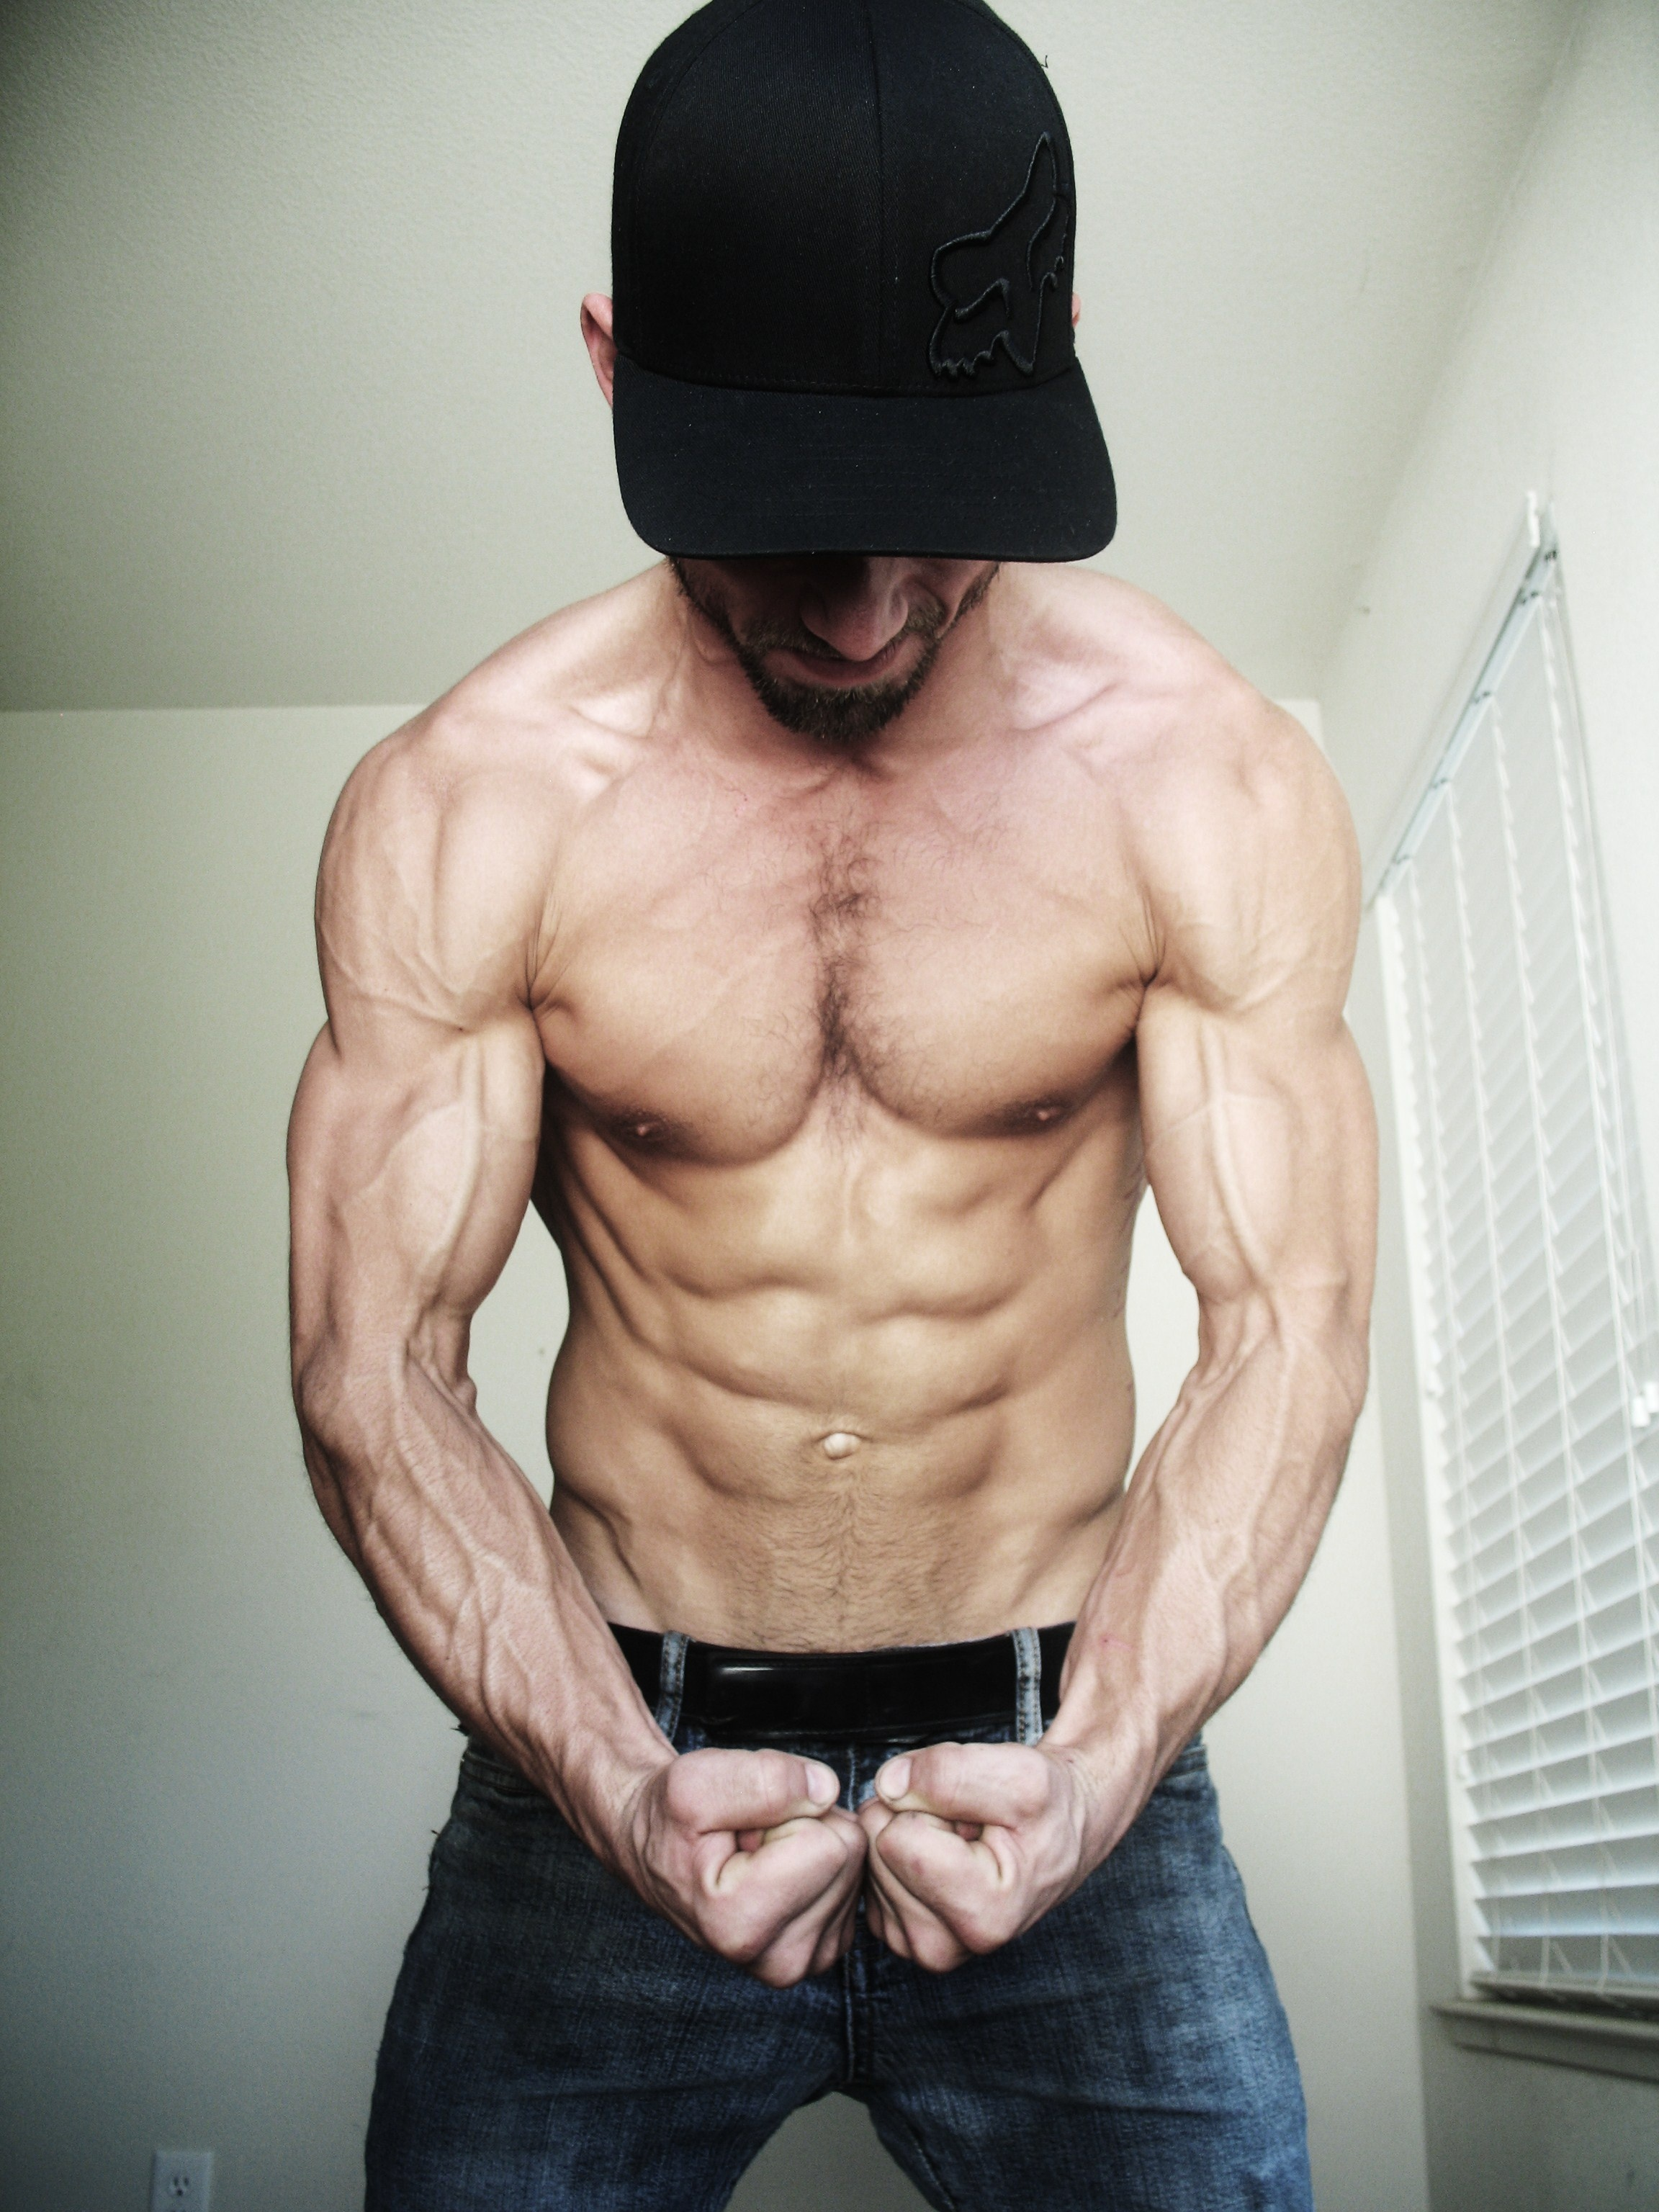 56kg Male with 5% Body Fat